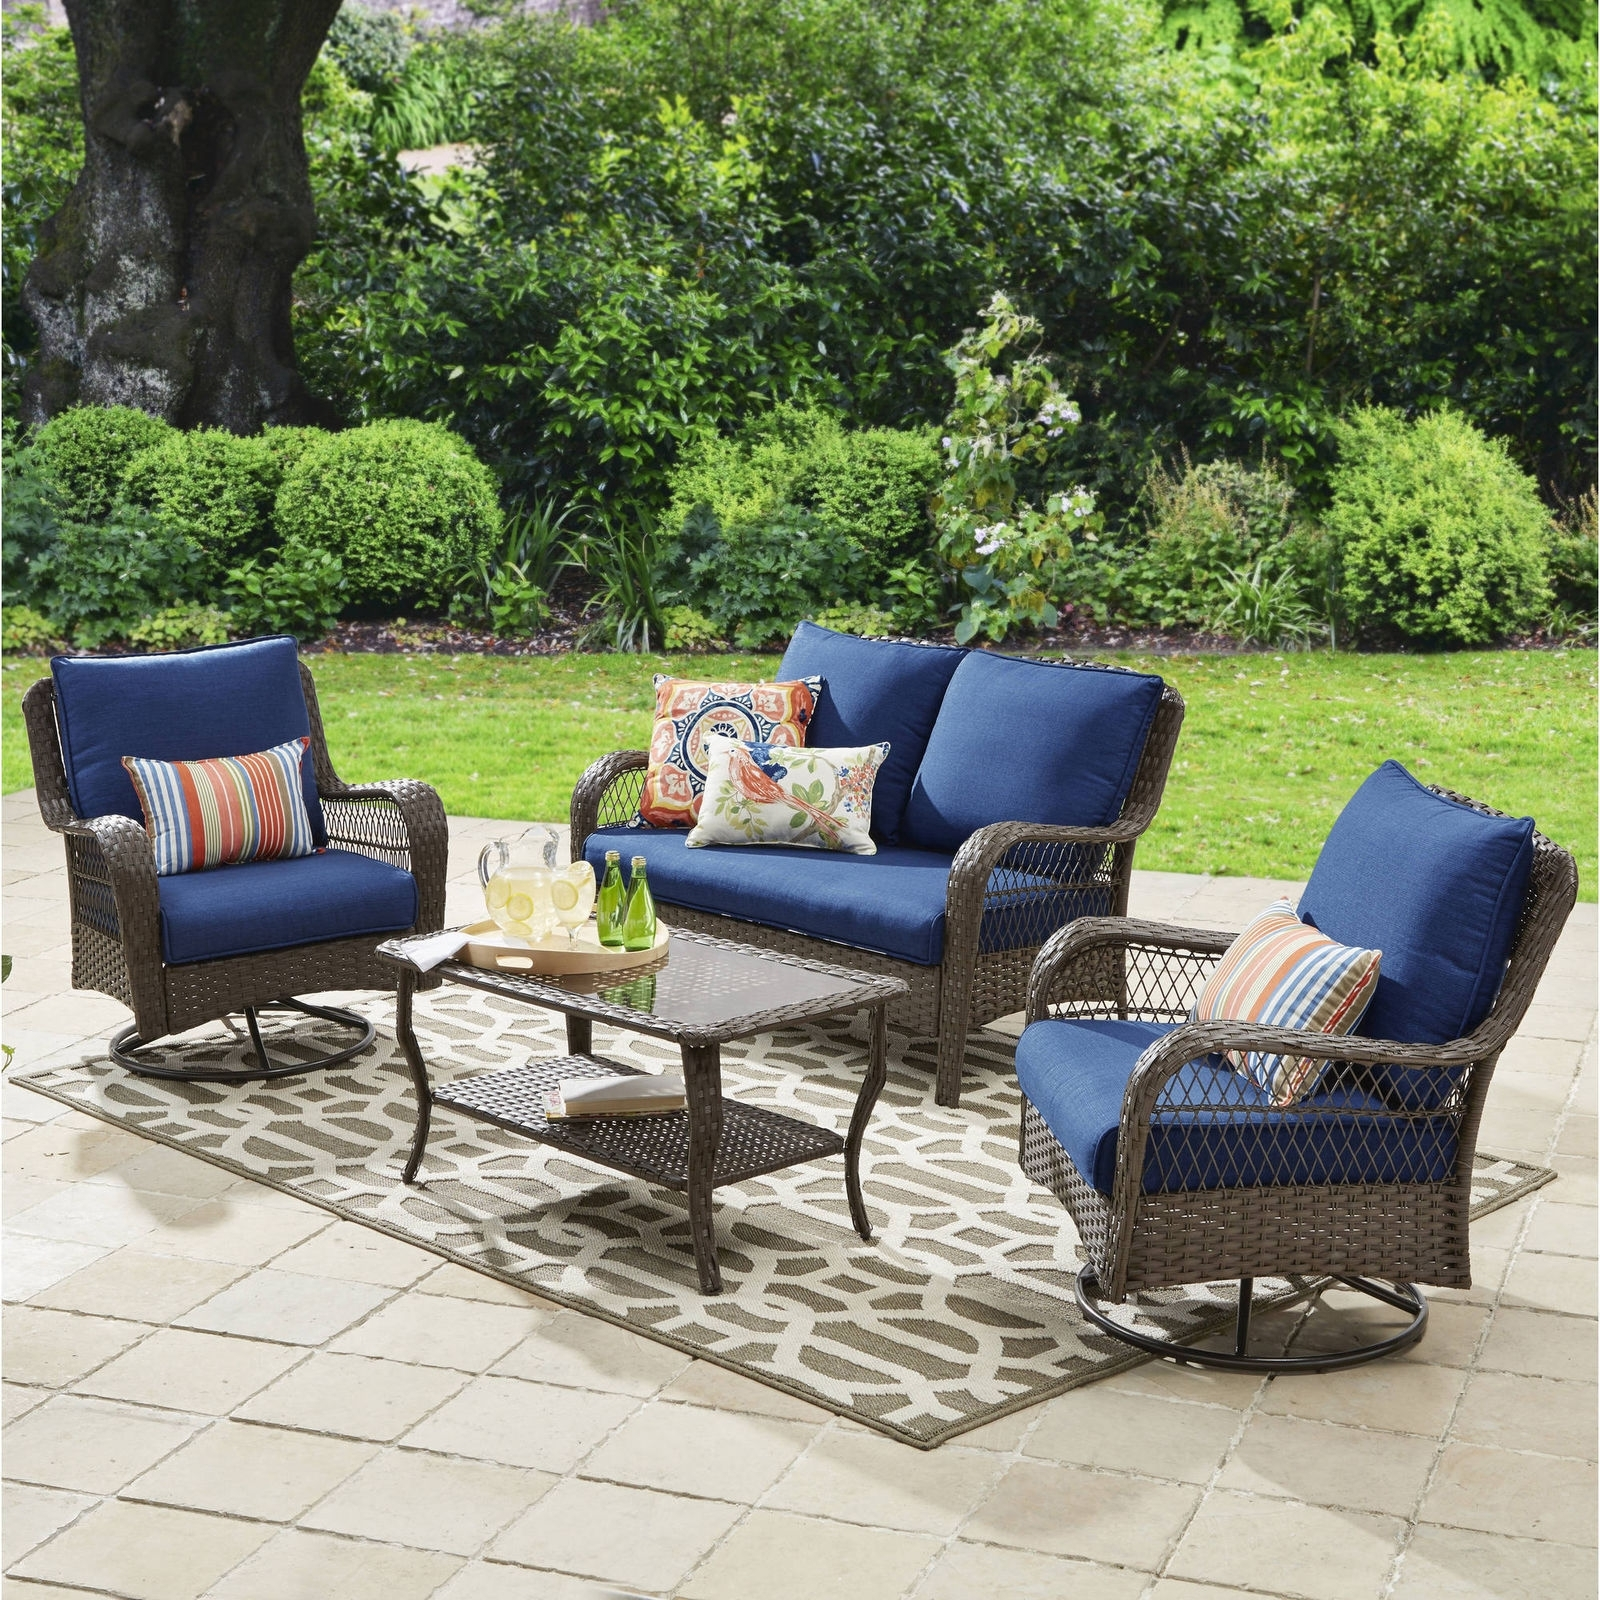 Newest Ebay Patio Conversation Sets Intended For Colebrook 4 Piece Outdoor Patio Conversation Set Seats 4 Deck (View 3 of 20)